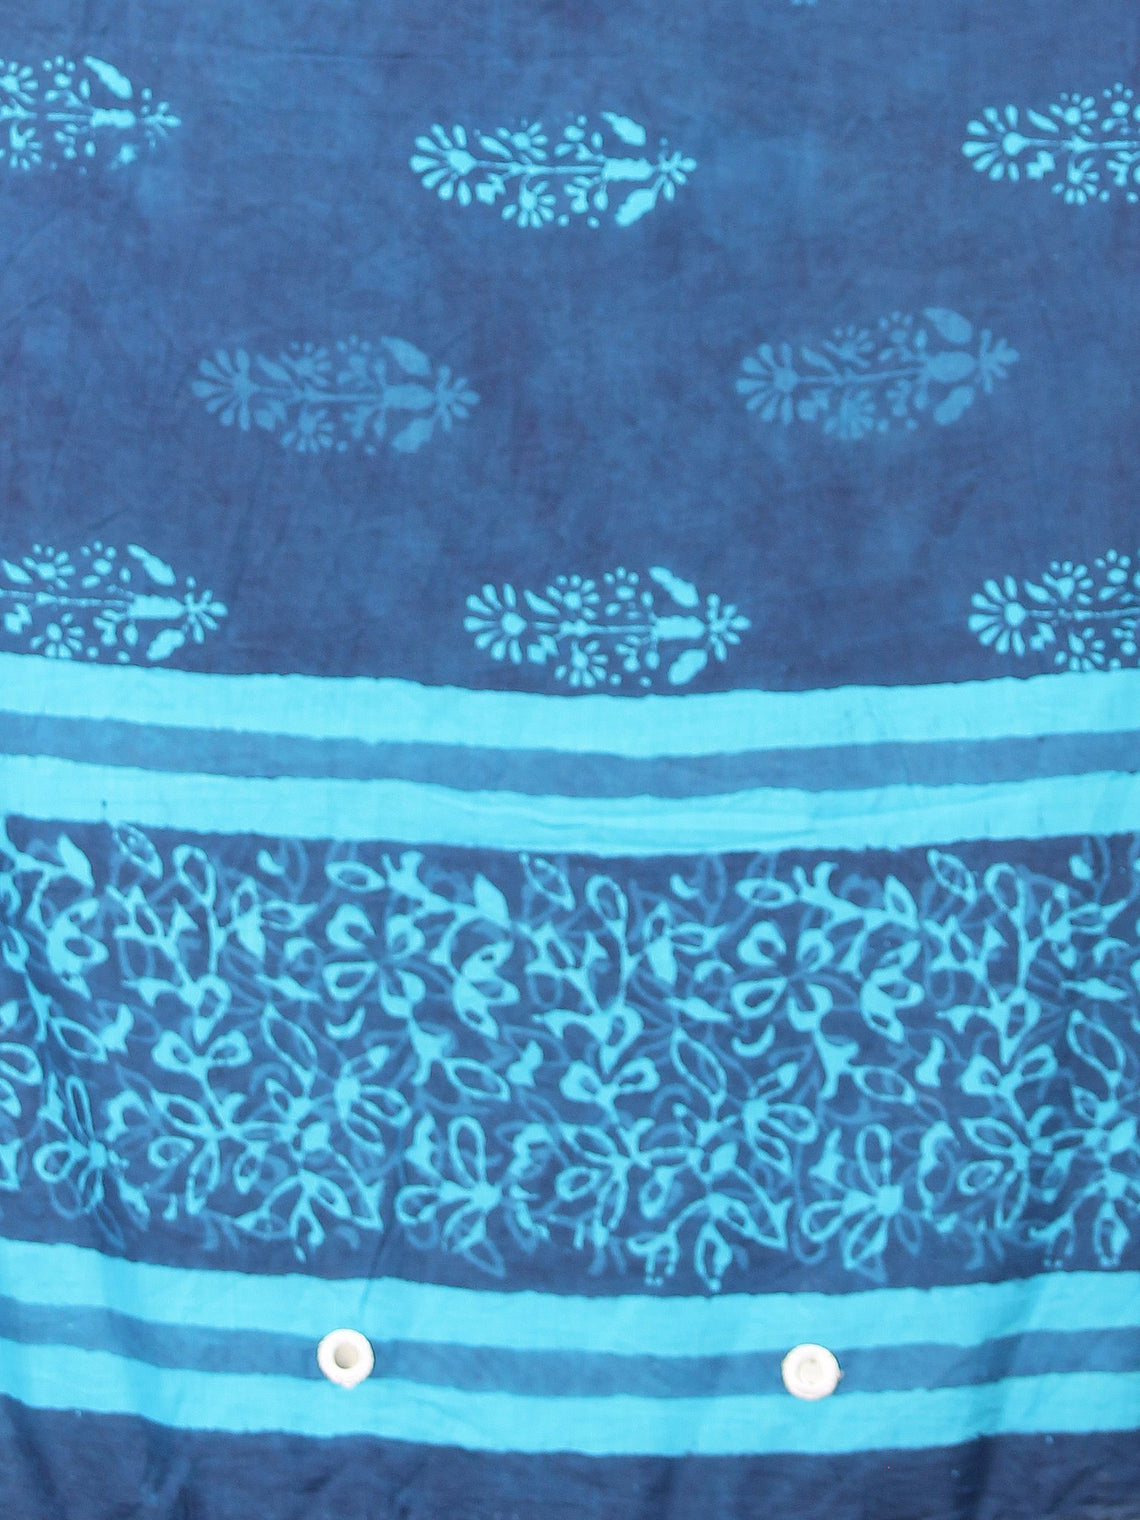 Indigo Sky Blue Cotton Hand Block Printed Dupatta With Mirror Work - D04170396